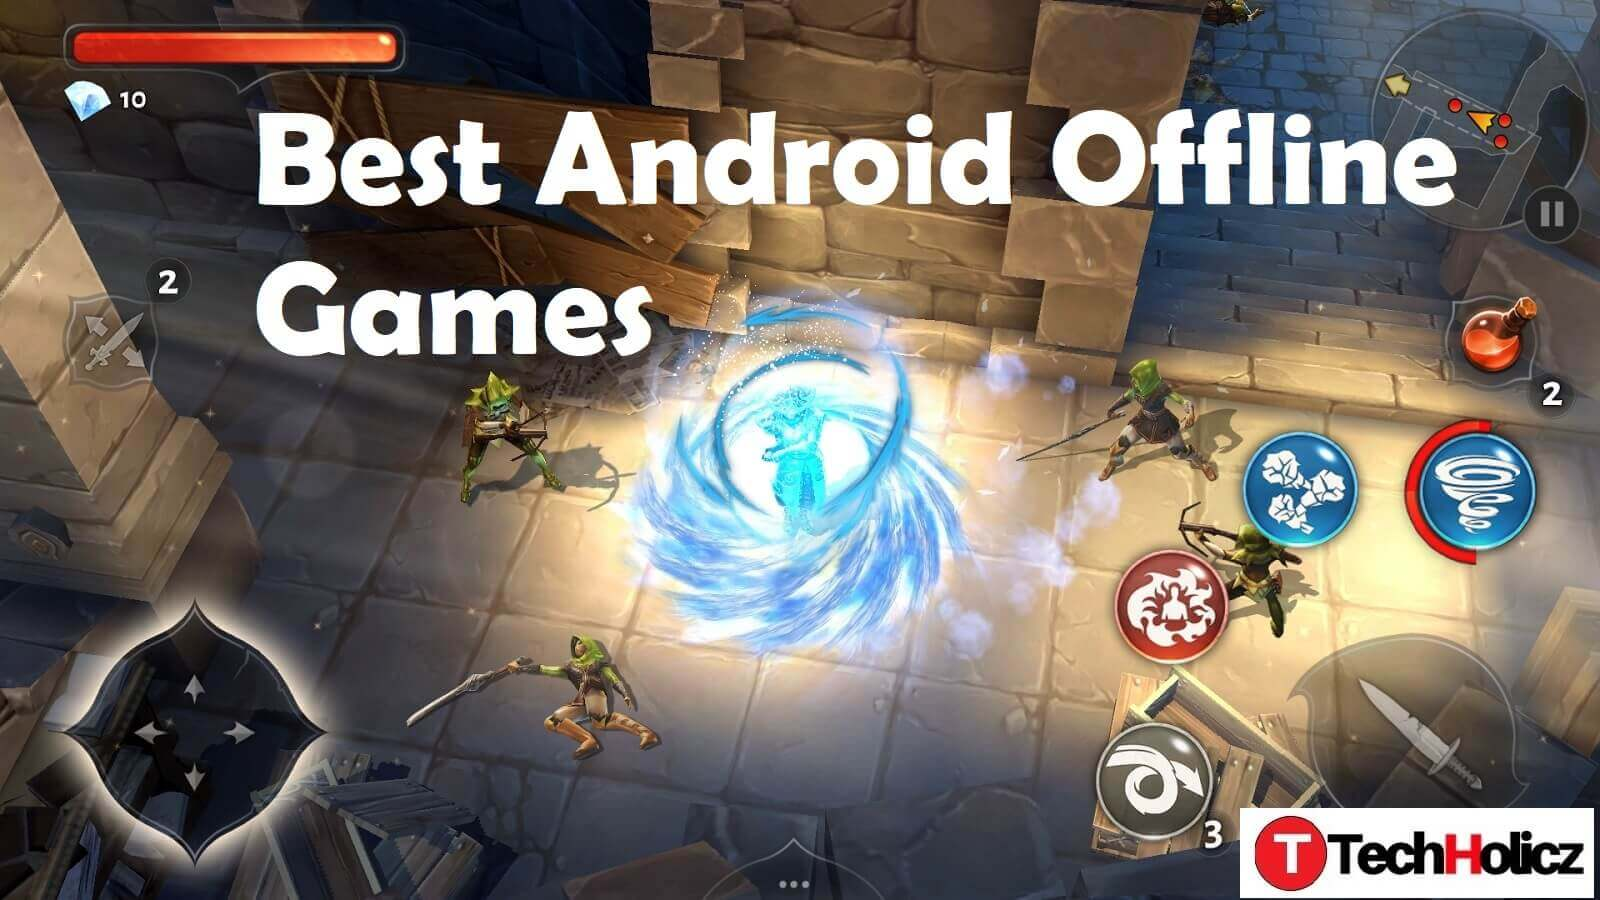 Best 7 Offline Android Games | Techholicz